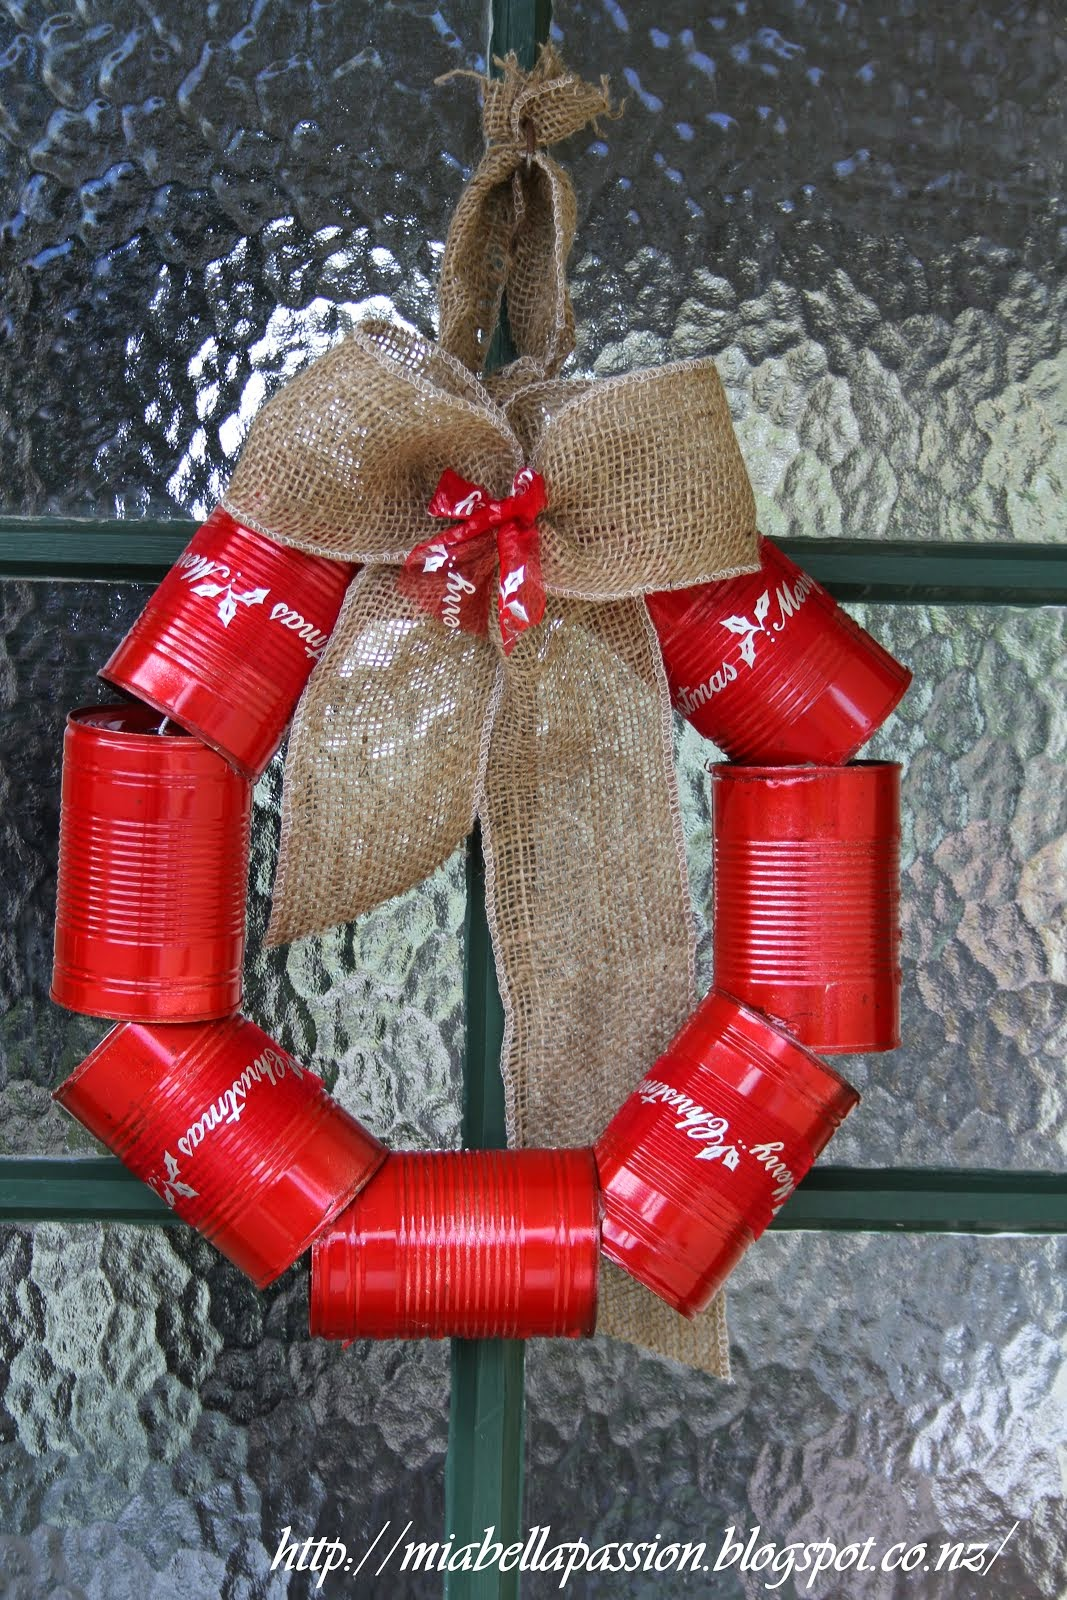 The Tin Can WREATH: